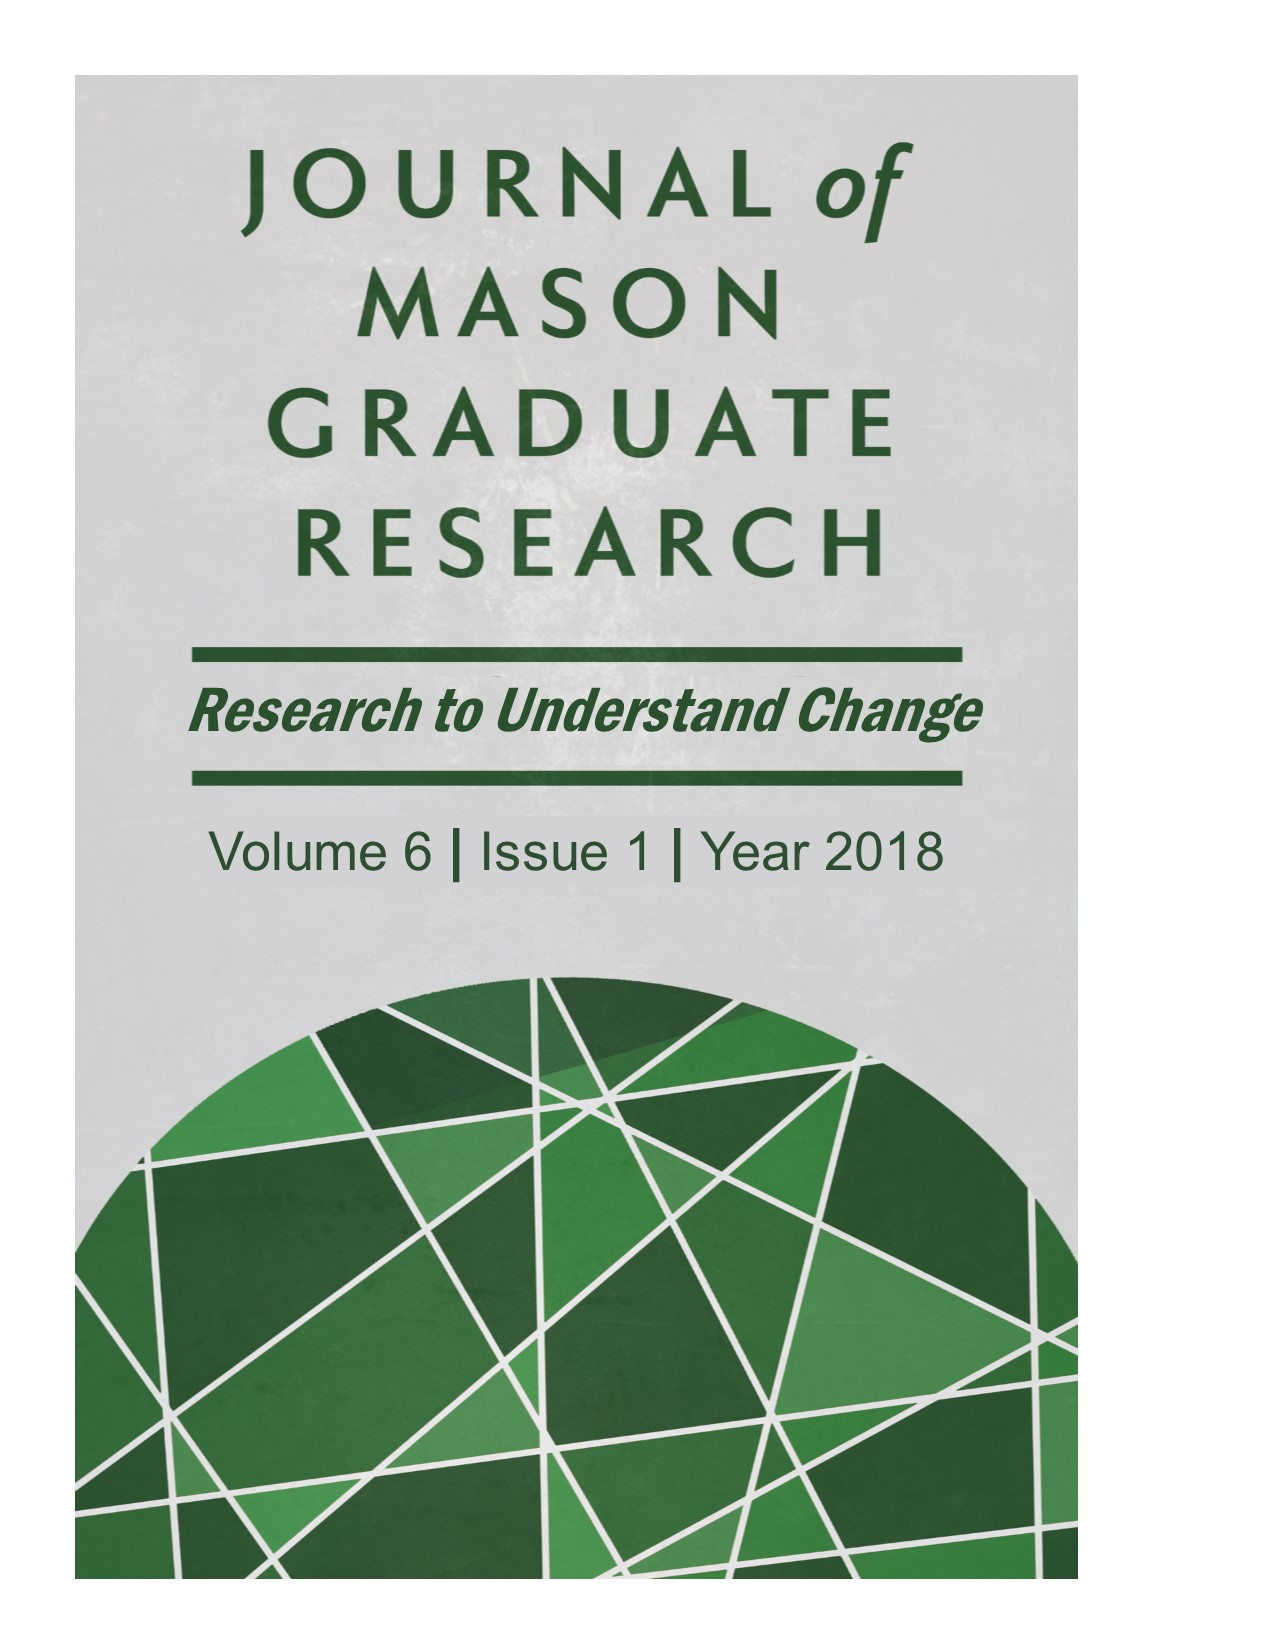 Journal of Mason Graduate Research, Volume 6, Issue 1, 2018